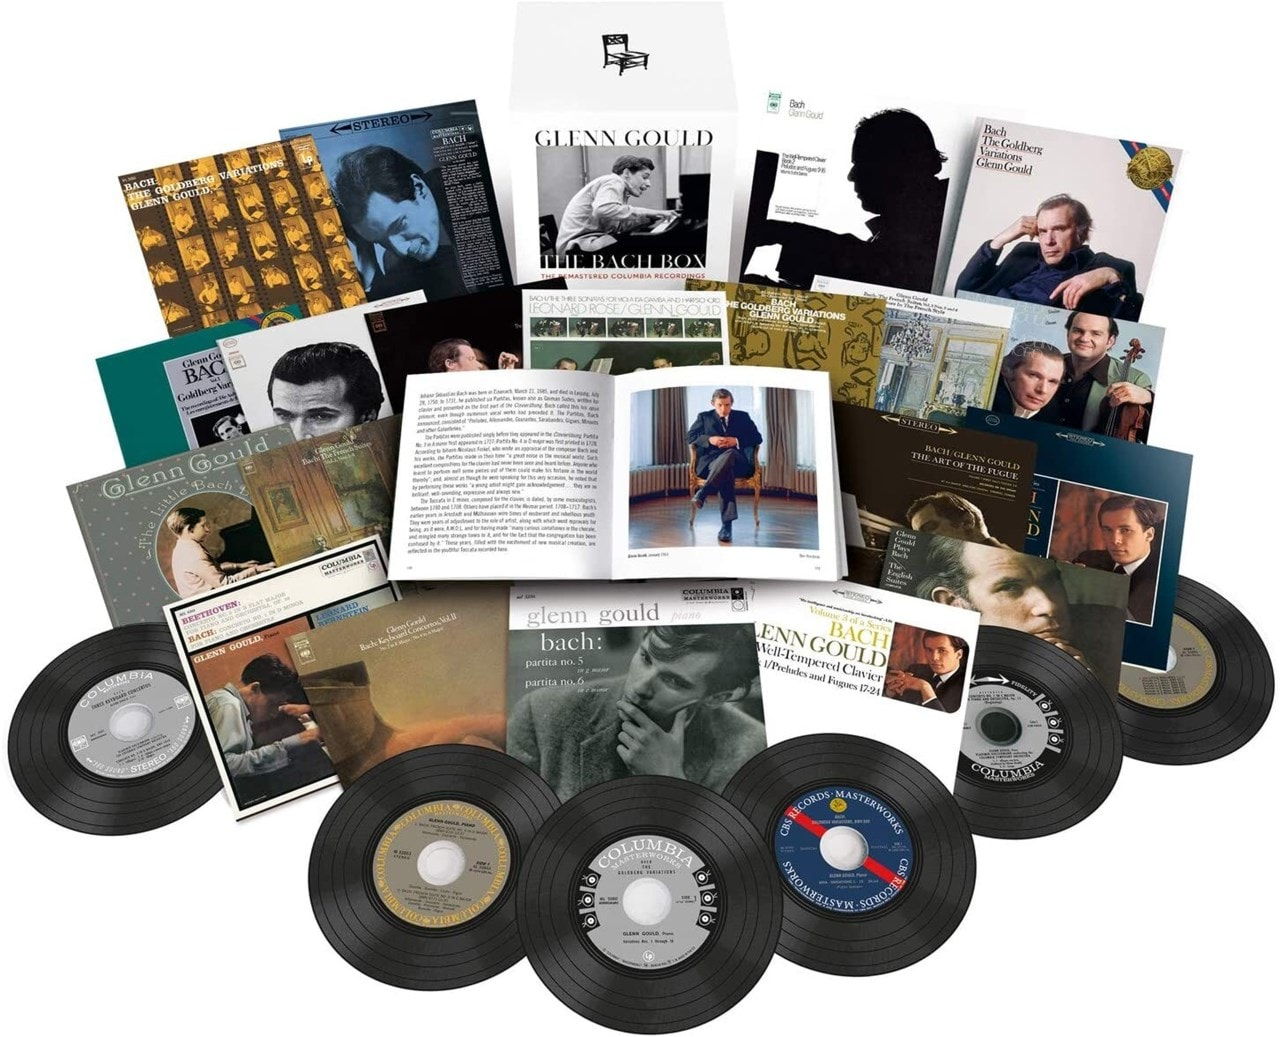 Glenn Gould: The Bach Box - The Remastered Columbia Recordings - 1